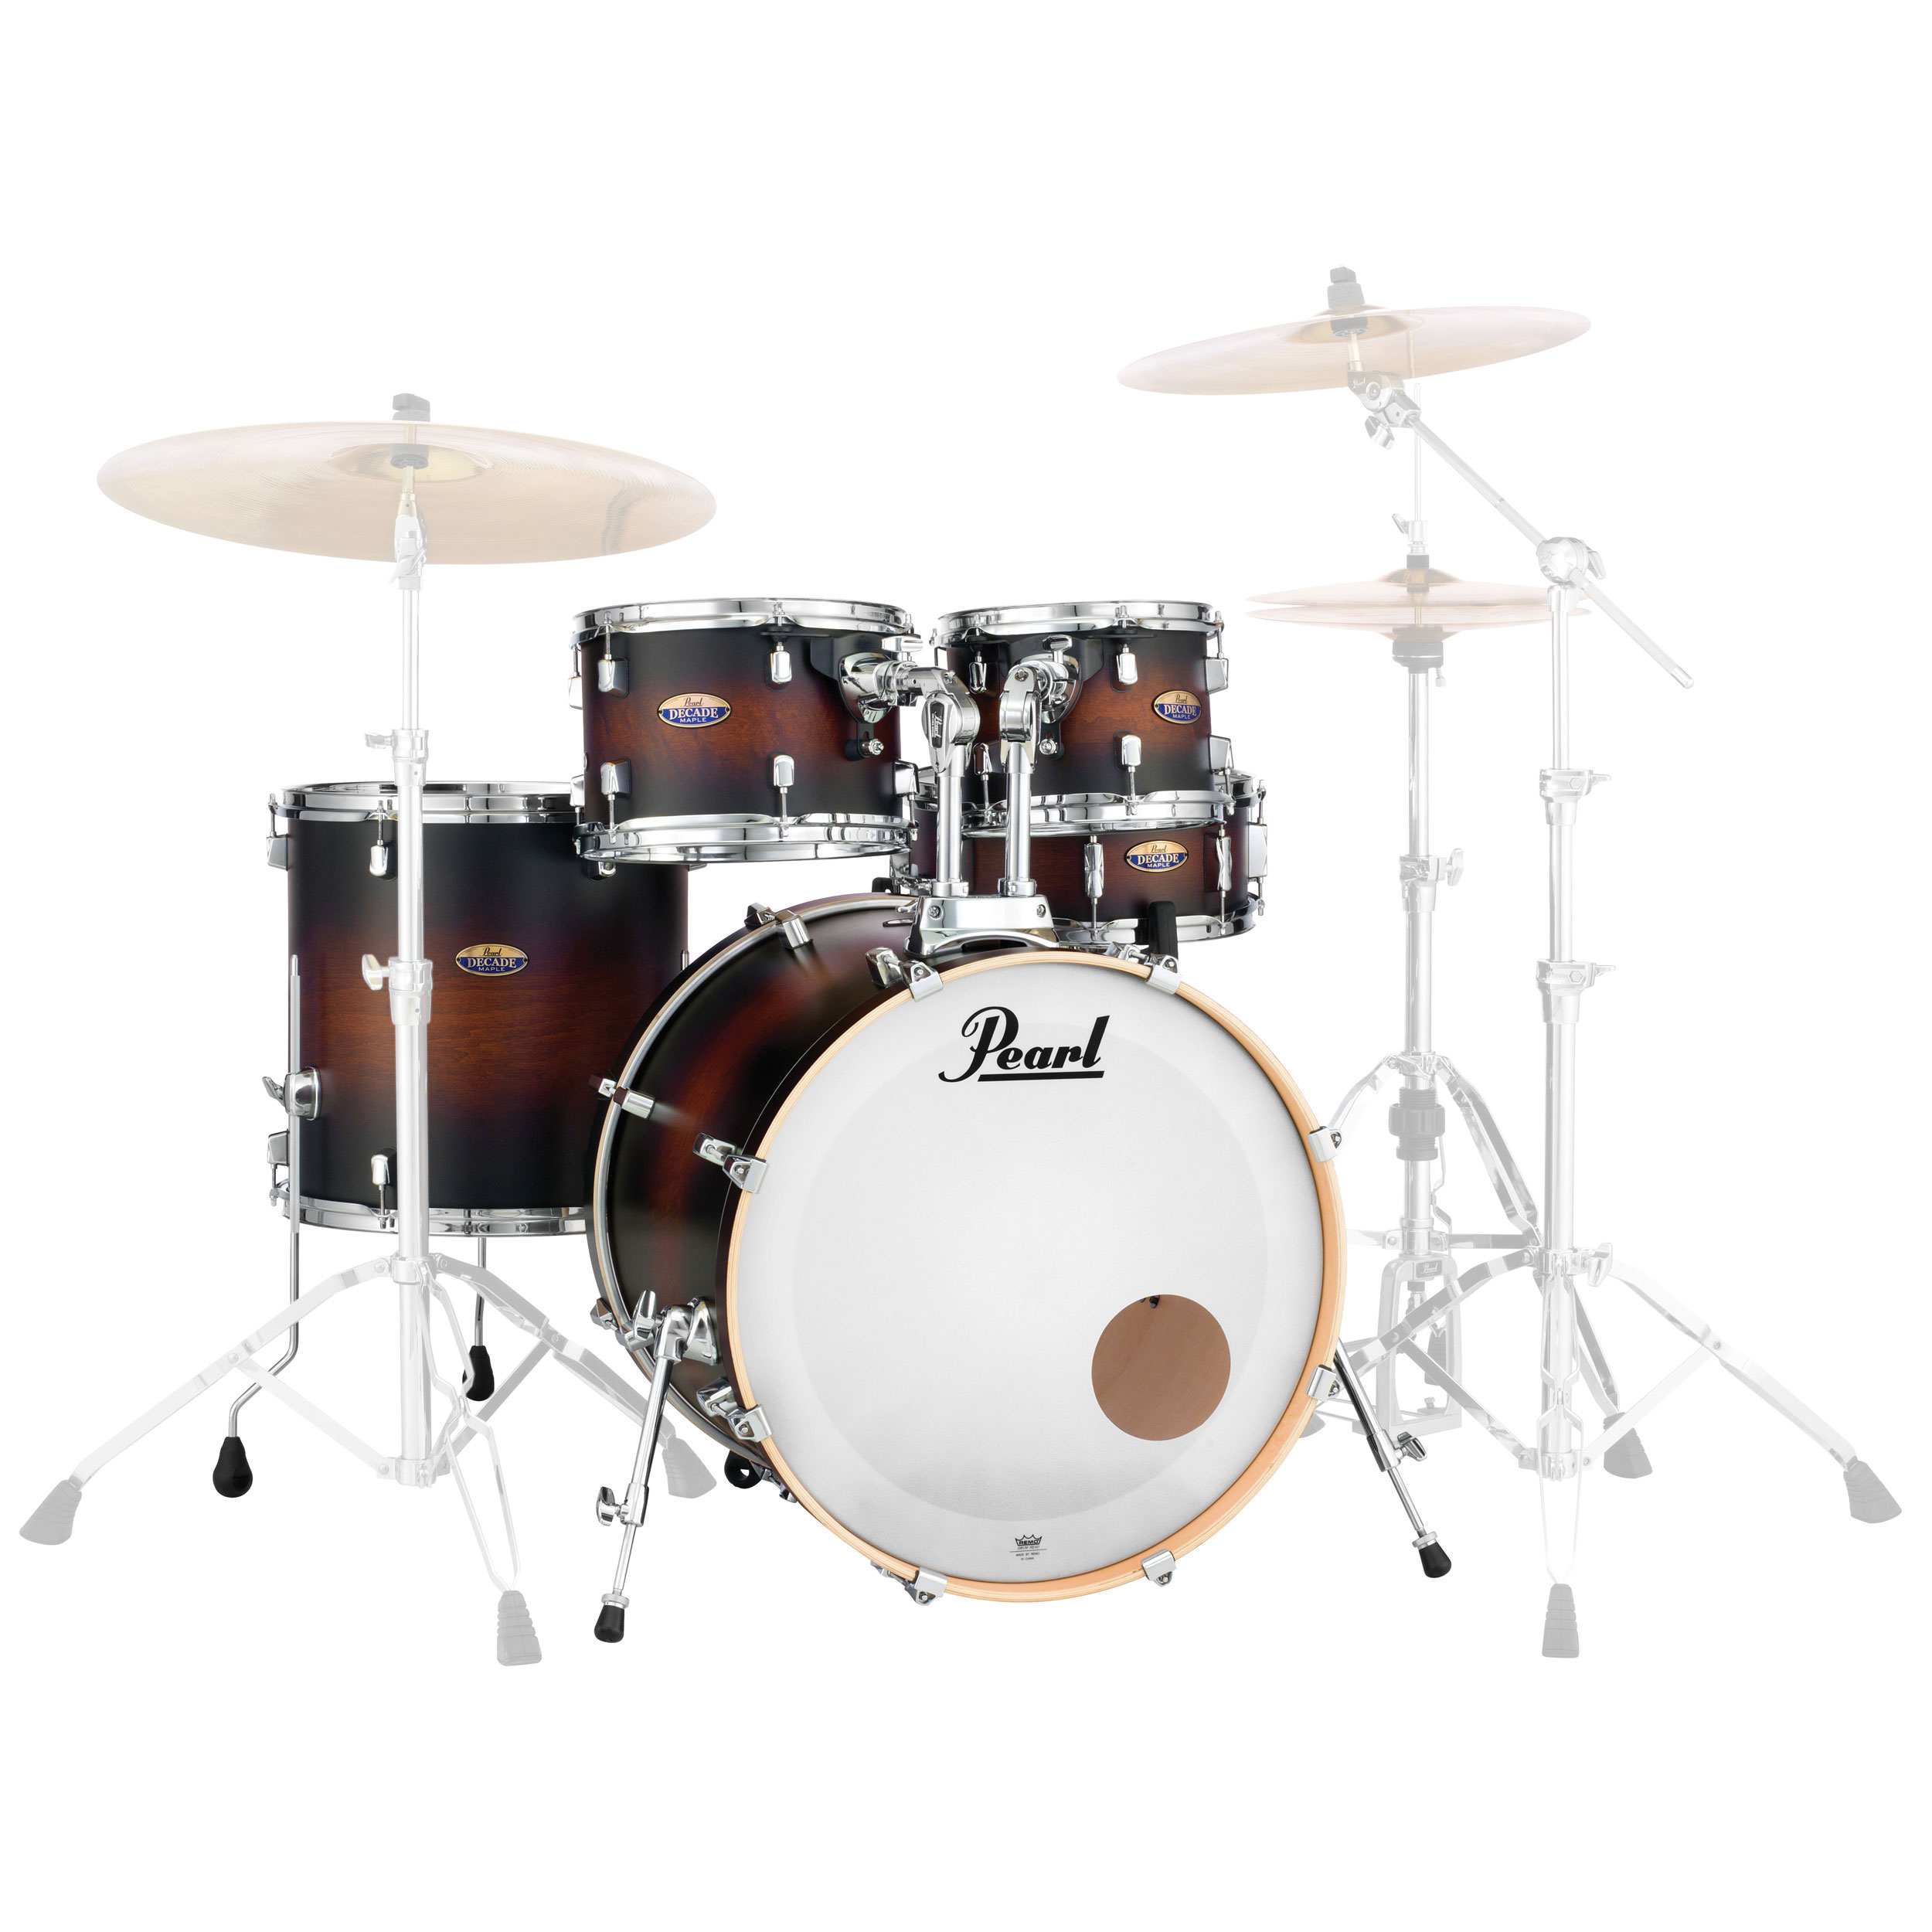 "Pearl Decade Maple 5-Piece Drum Set Shell Pack (22"" Bass, 10/12/16"" Toms, 14"" Snare) in Lacquer Finish"